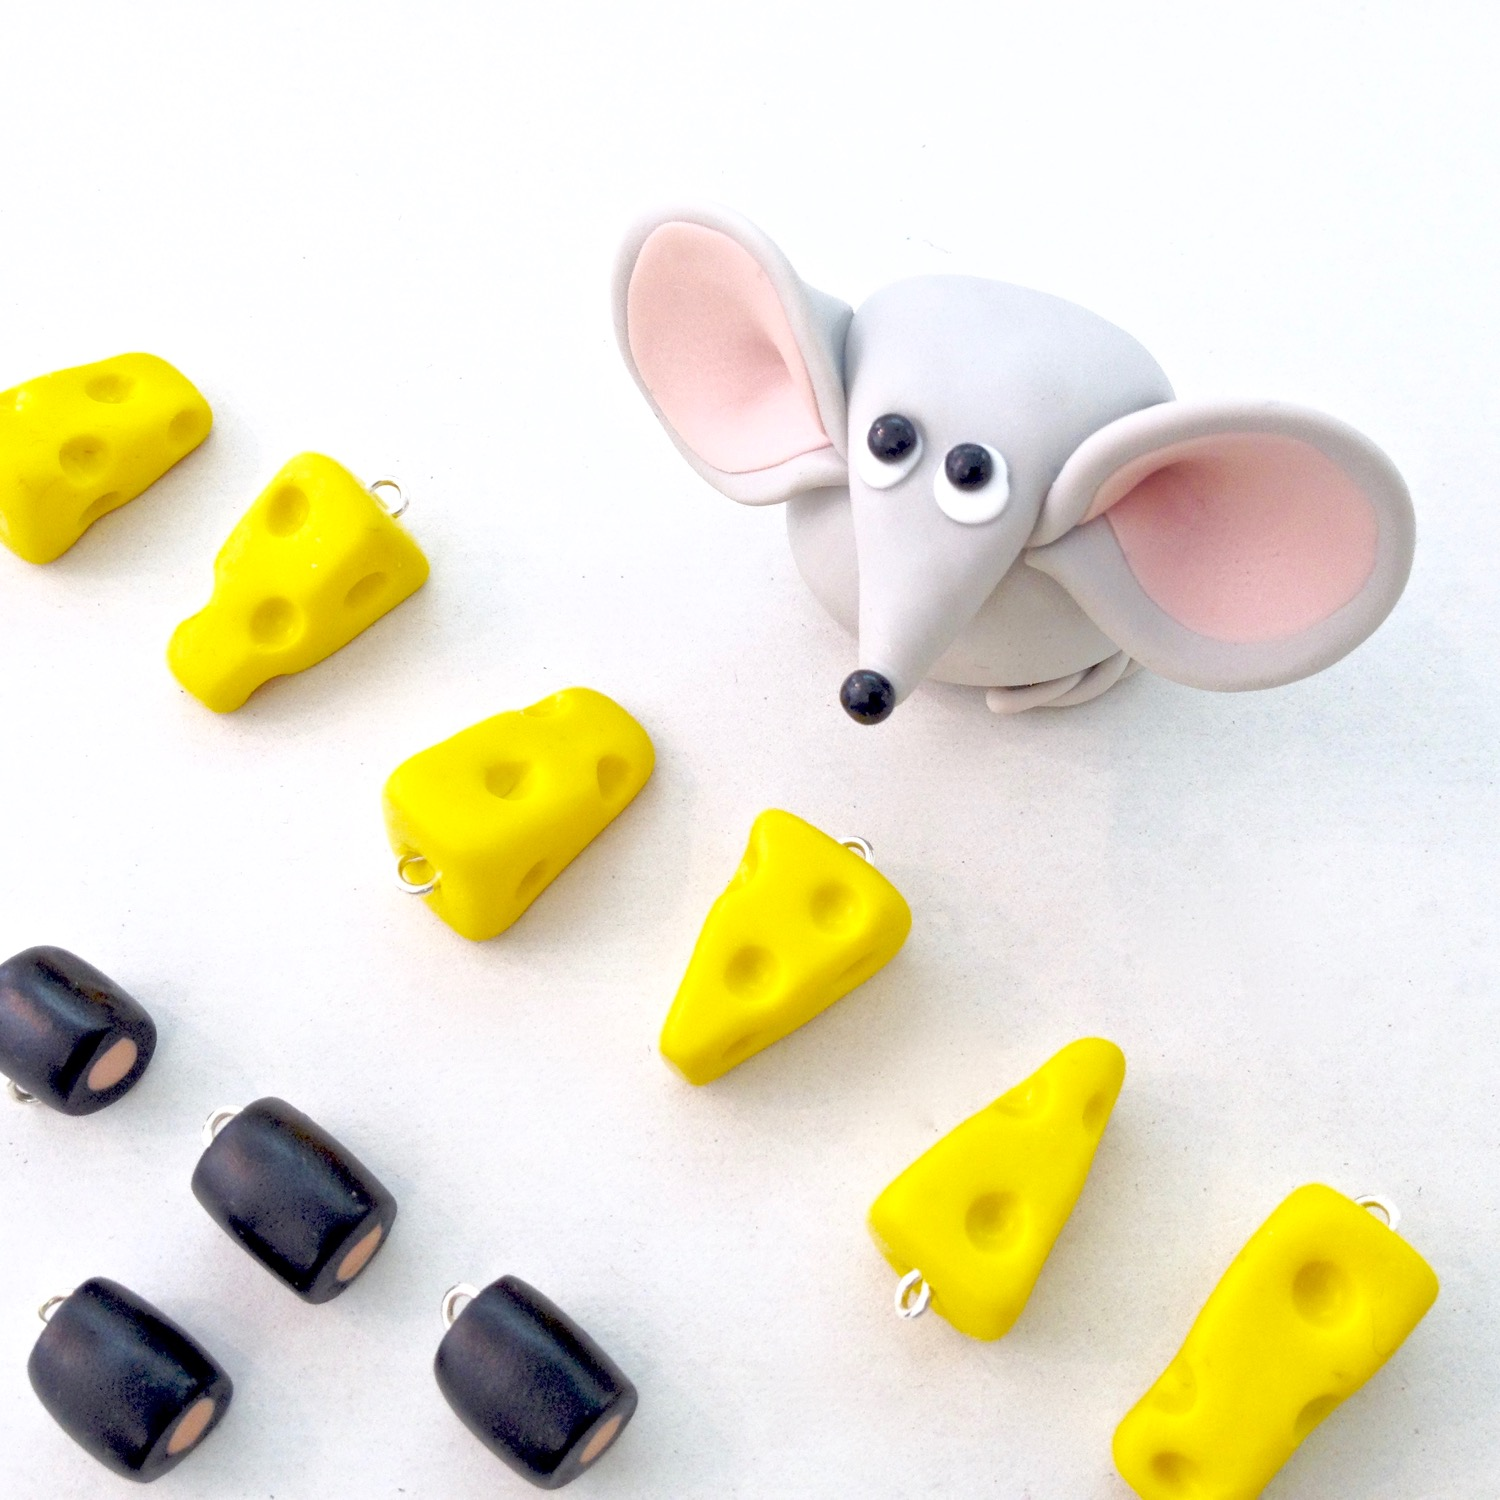 Handmade Fimo polymer clay figurines by Laura Mirjami